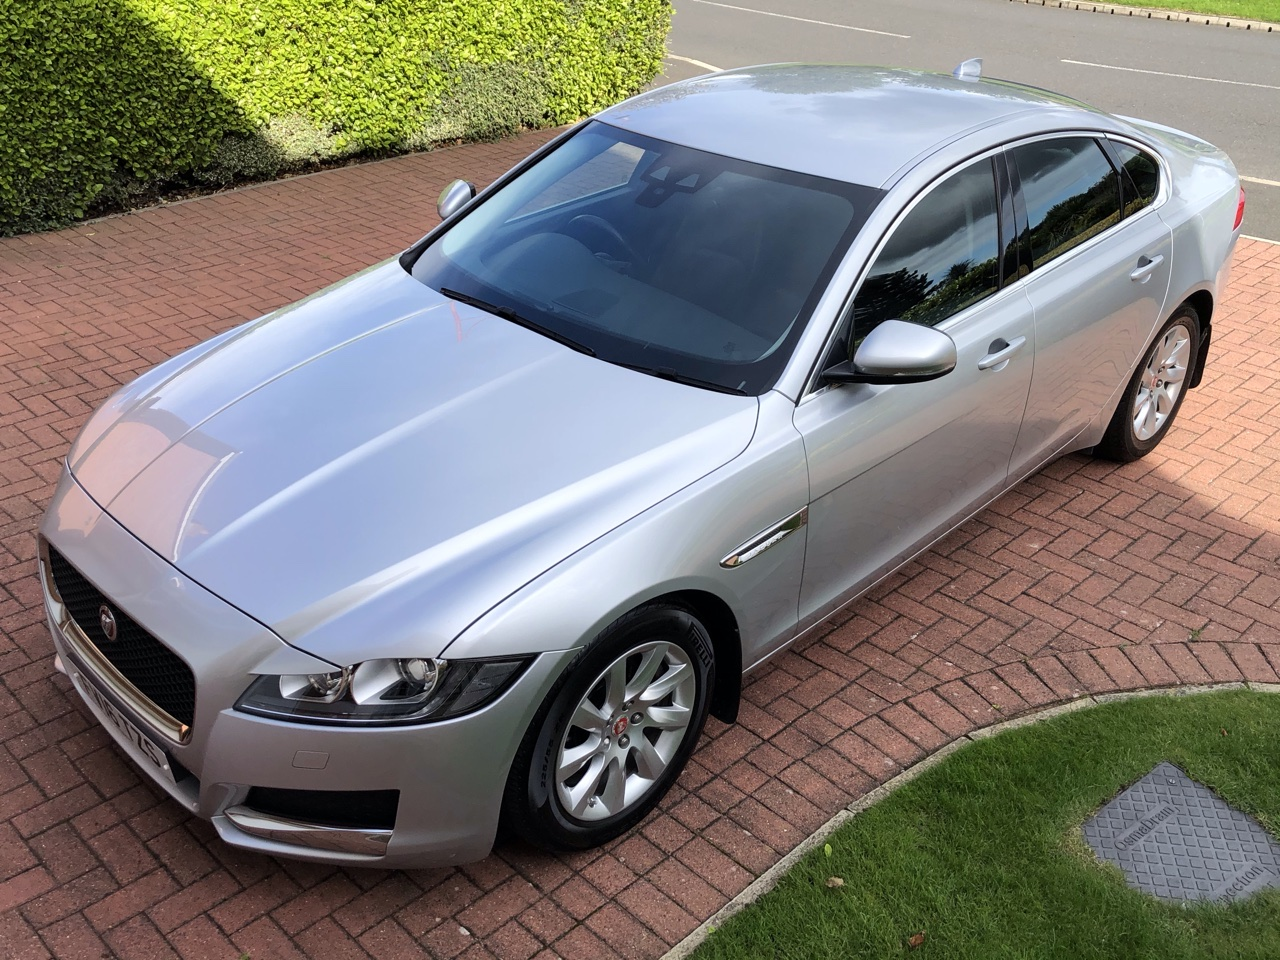 2016 16 JAGUAR XF 2.0D PRESTIGE AUTO SALOON (NEW MODEL)